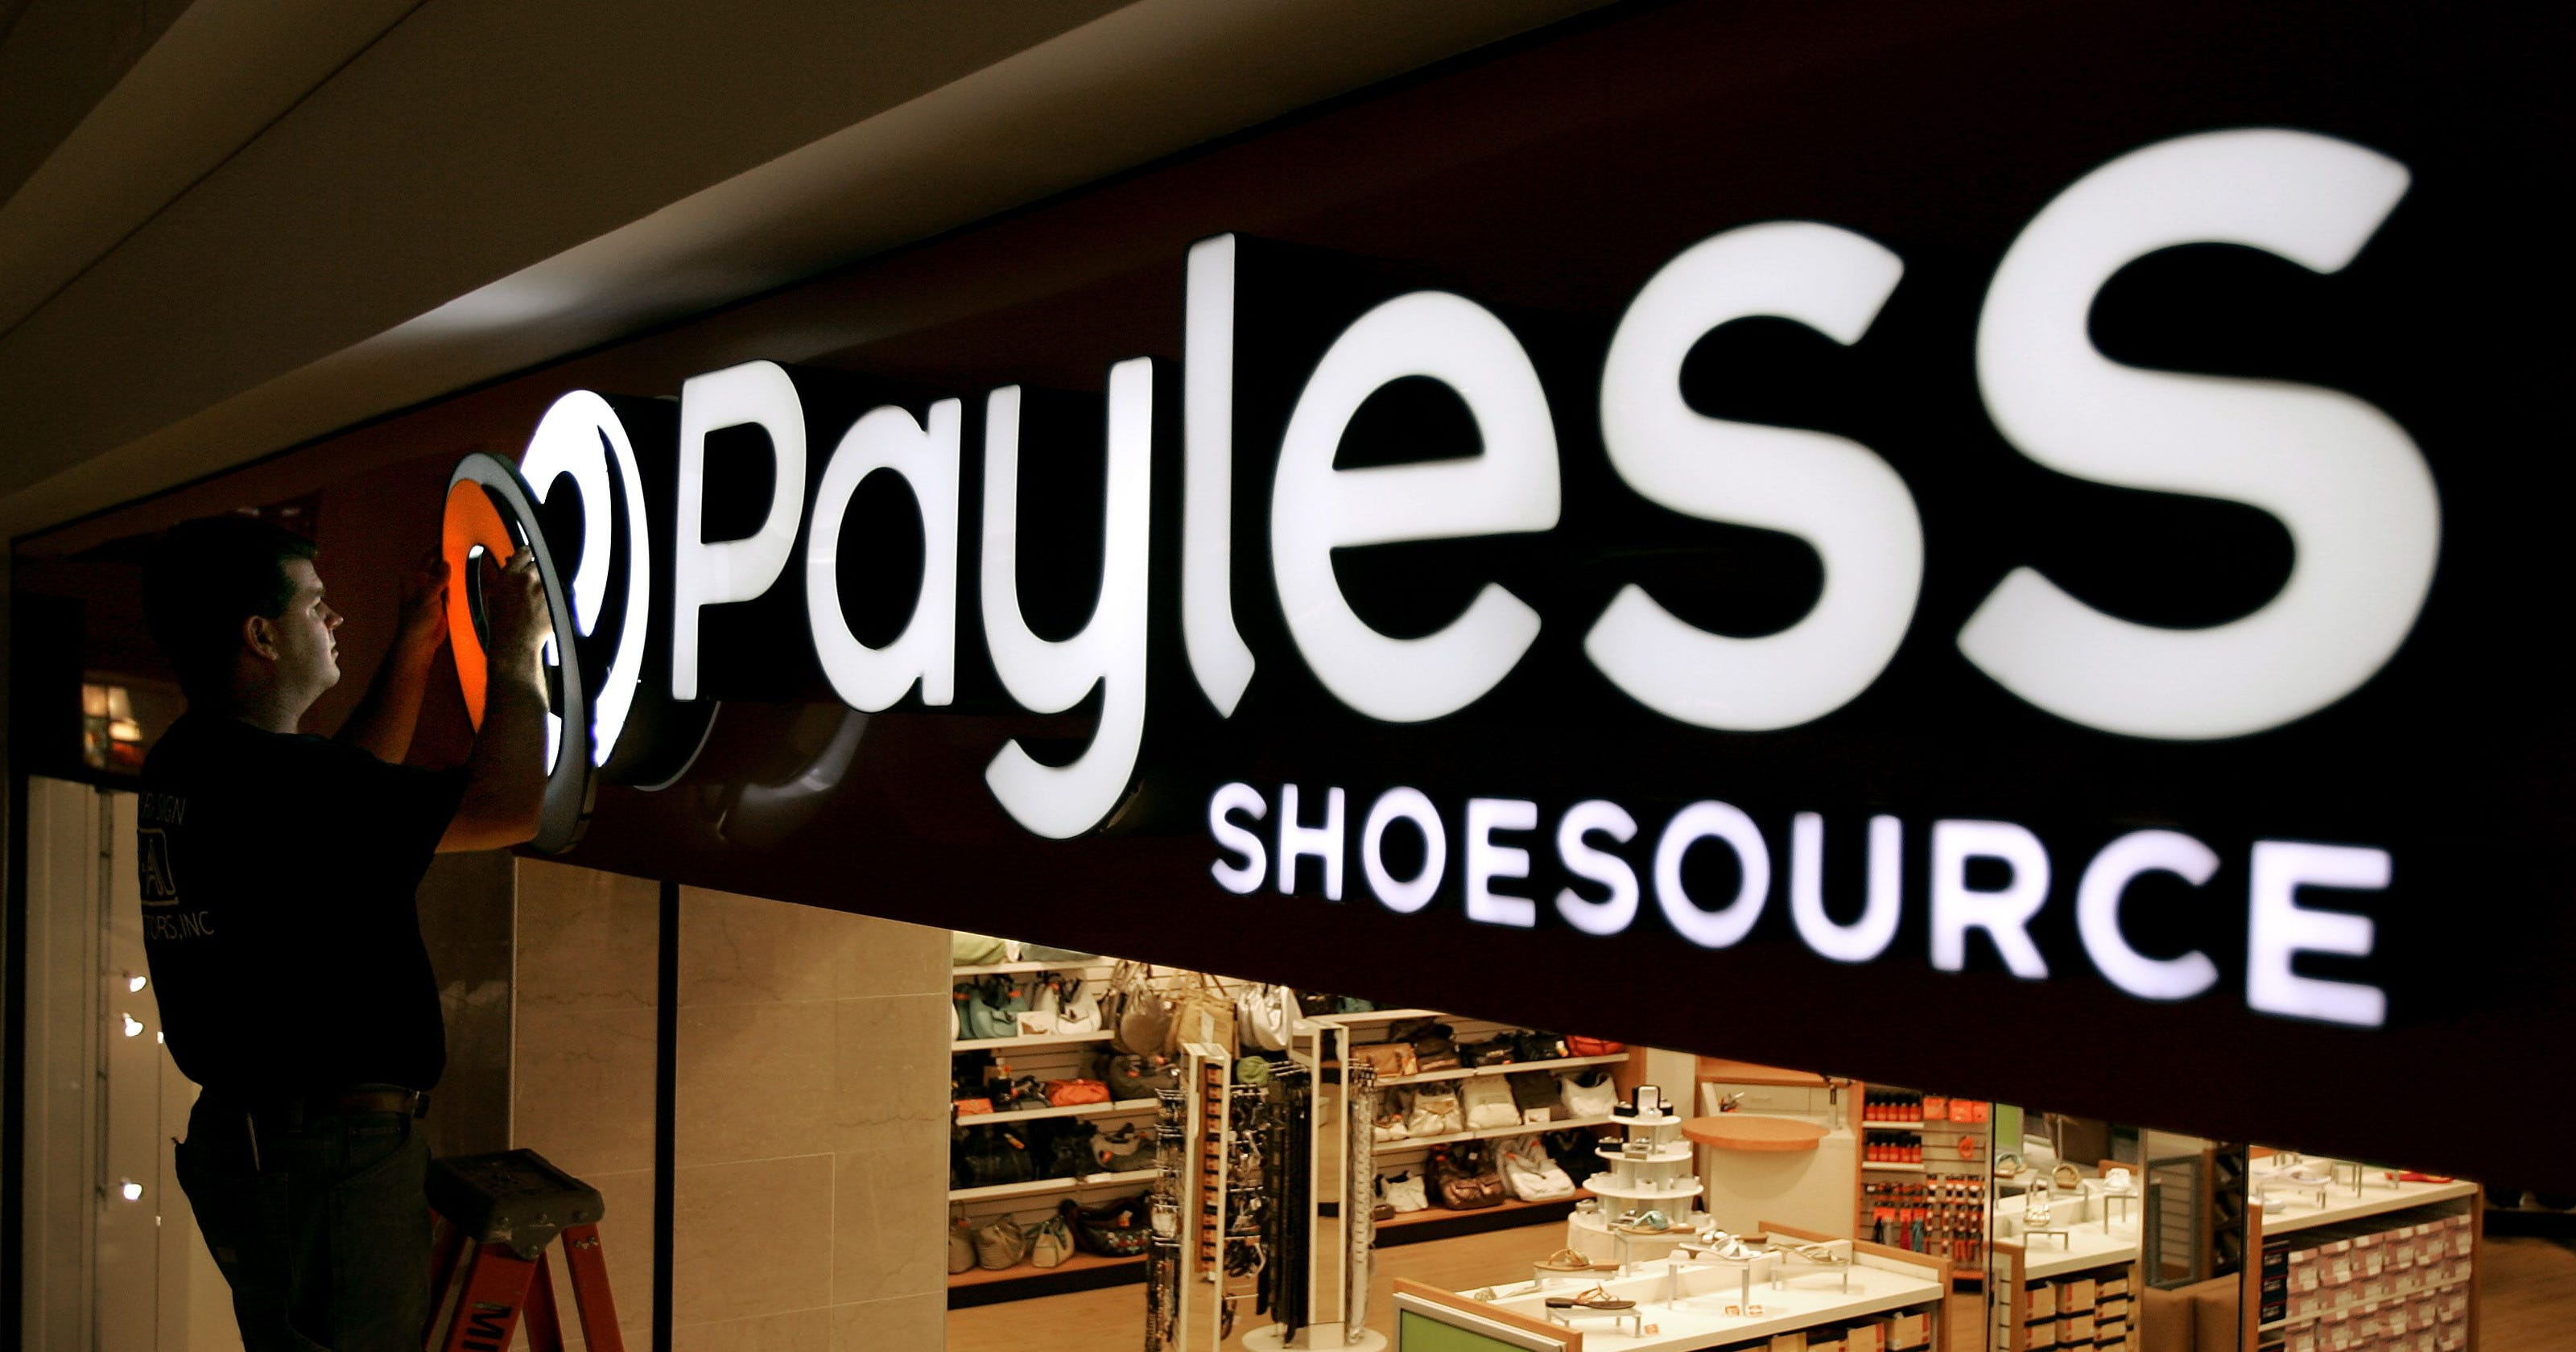 5cfdfed1d Payless ShoeSource  Discount shoe retailer to close more stores  see ...